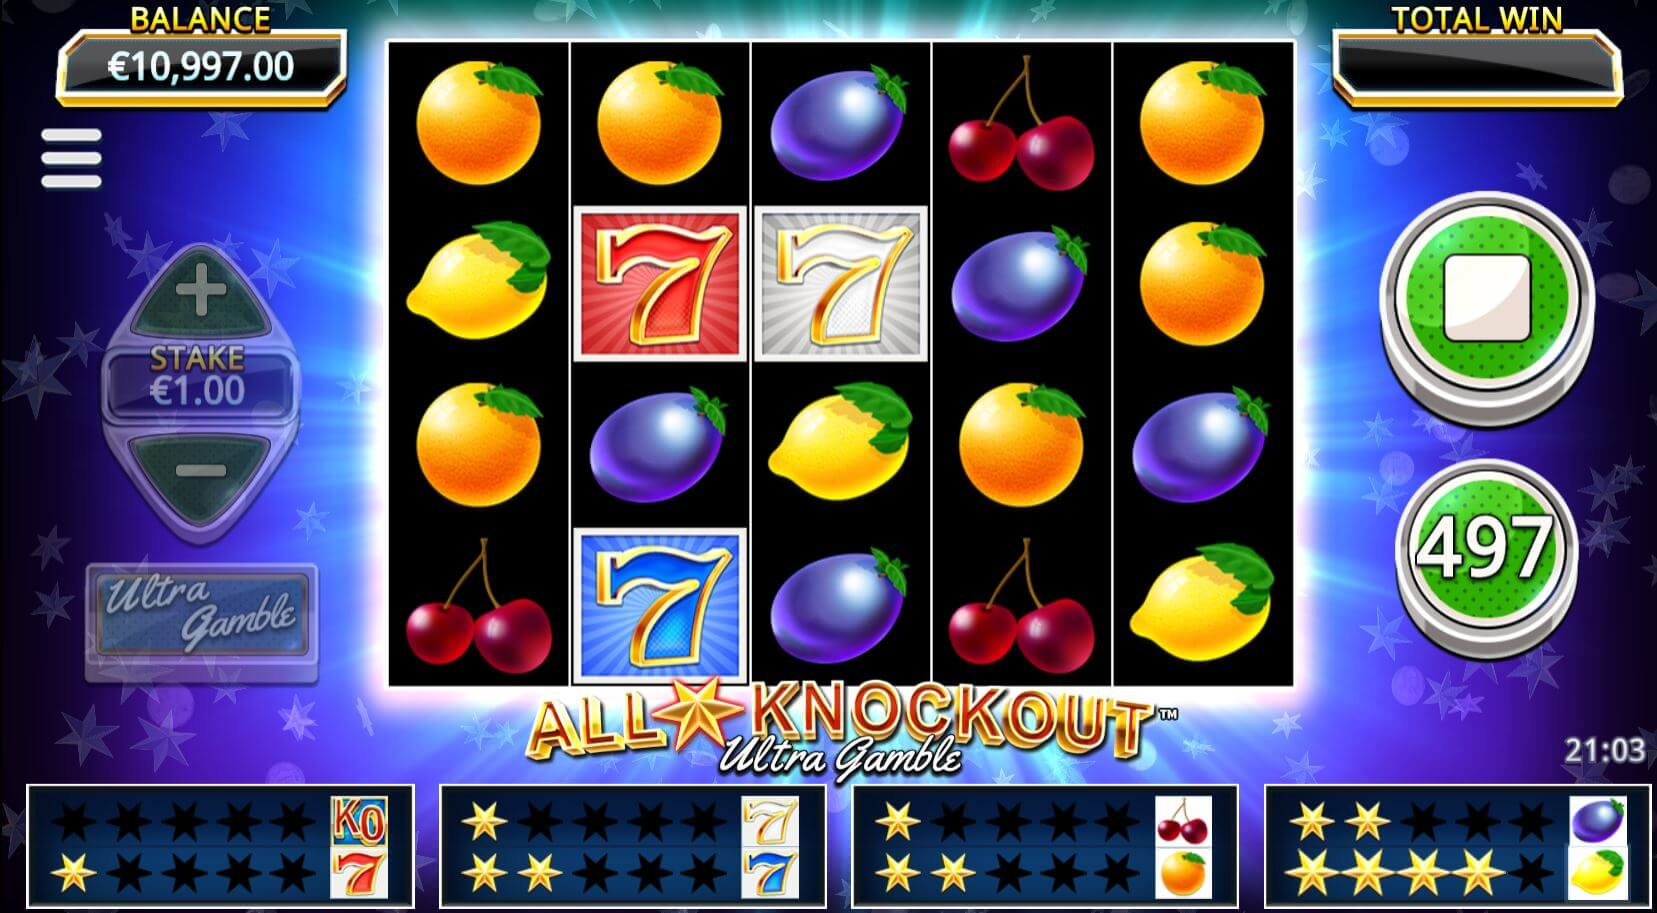 All Star Knockout Ultra Gamble Slot Gameplay